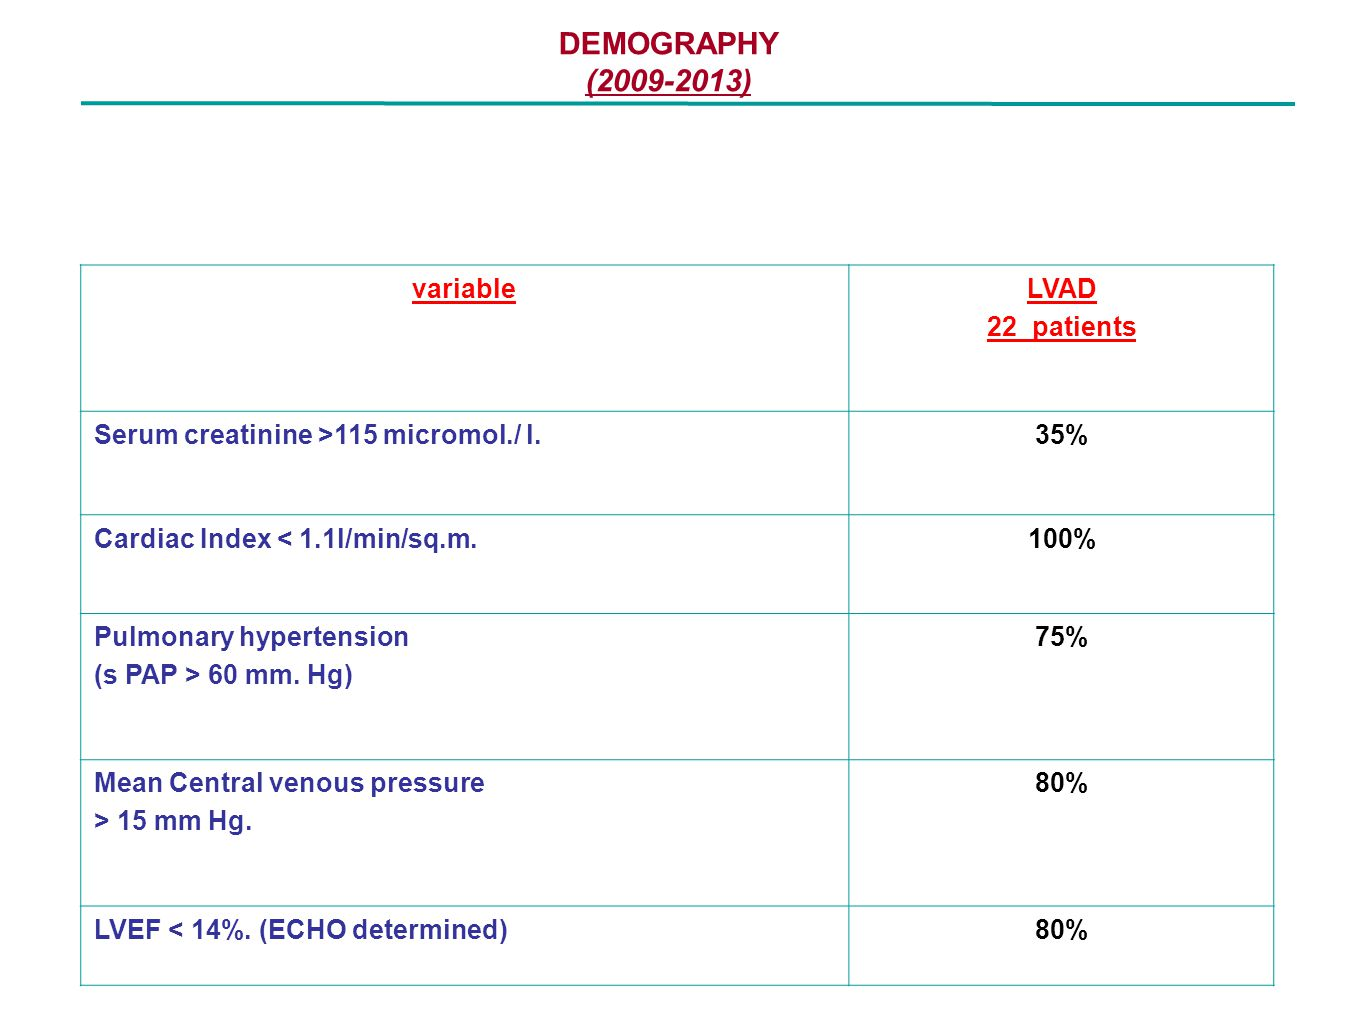 DEMOGRAPHY (2009-2013) variable LVAD 22 patients